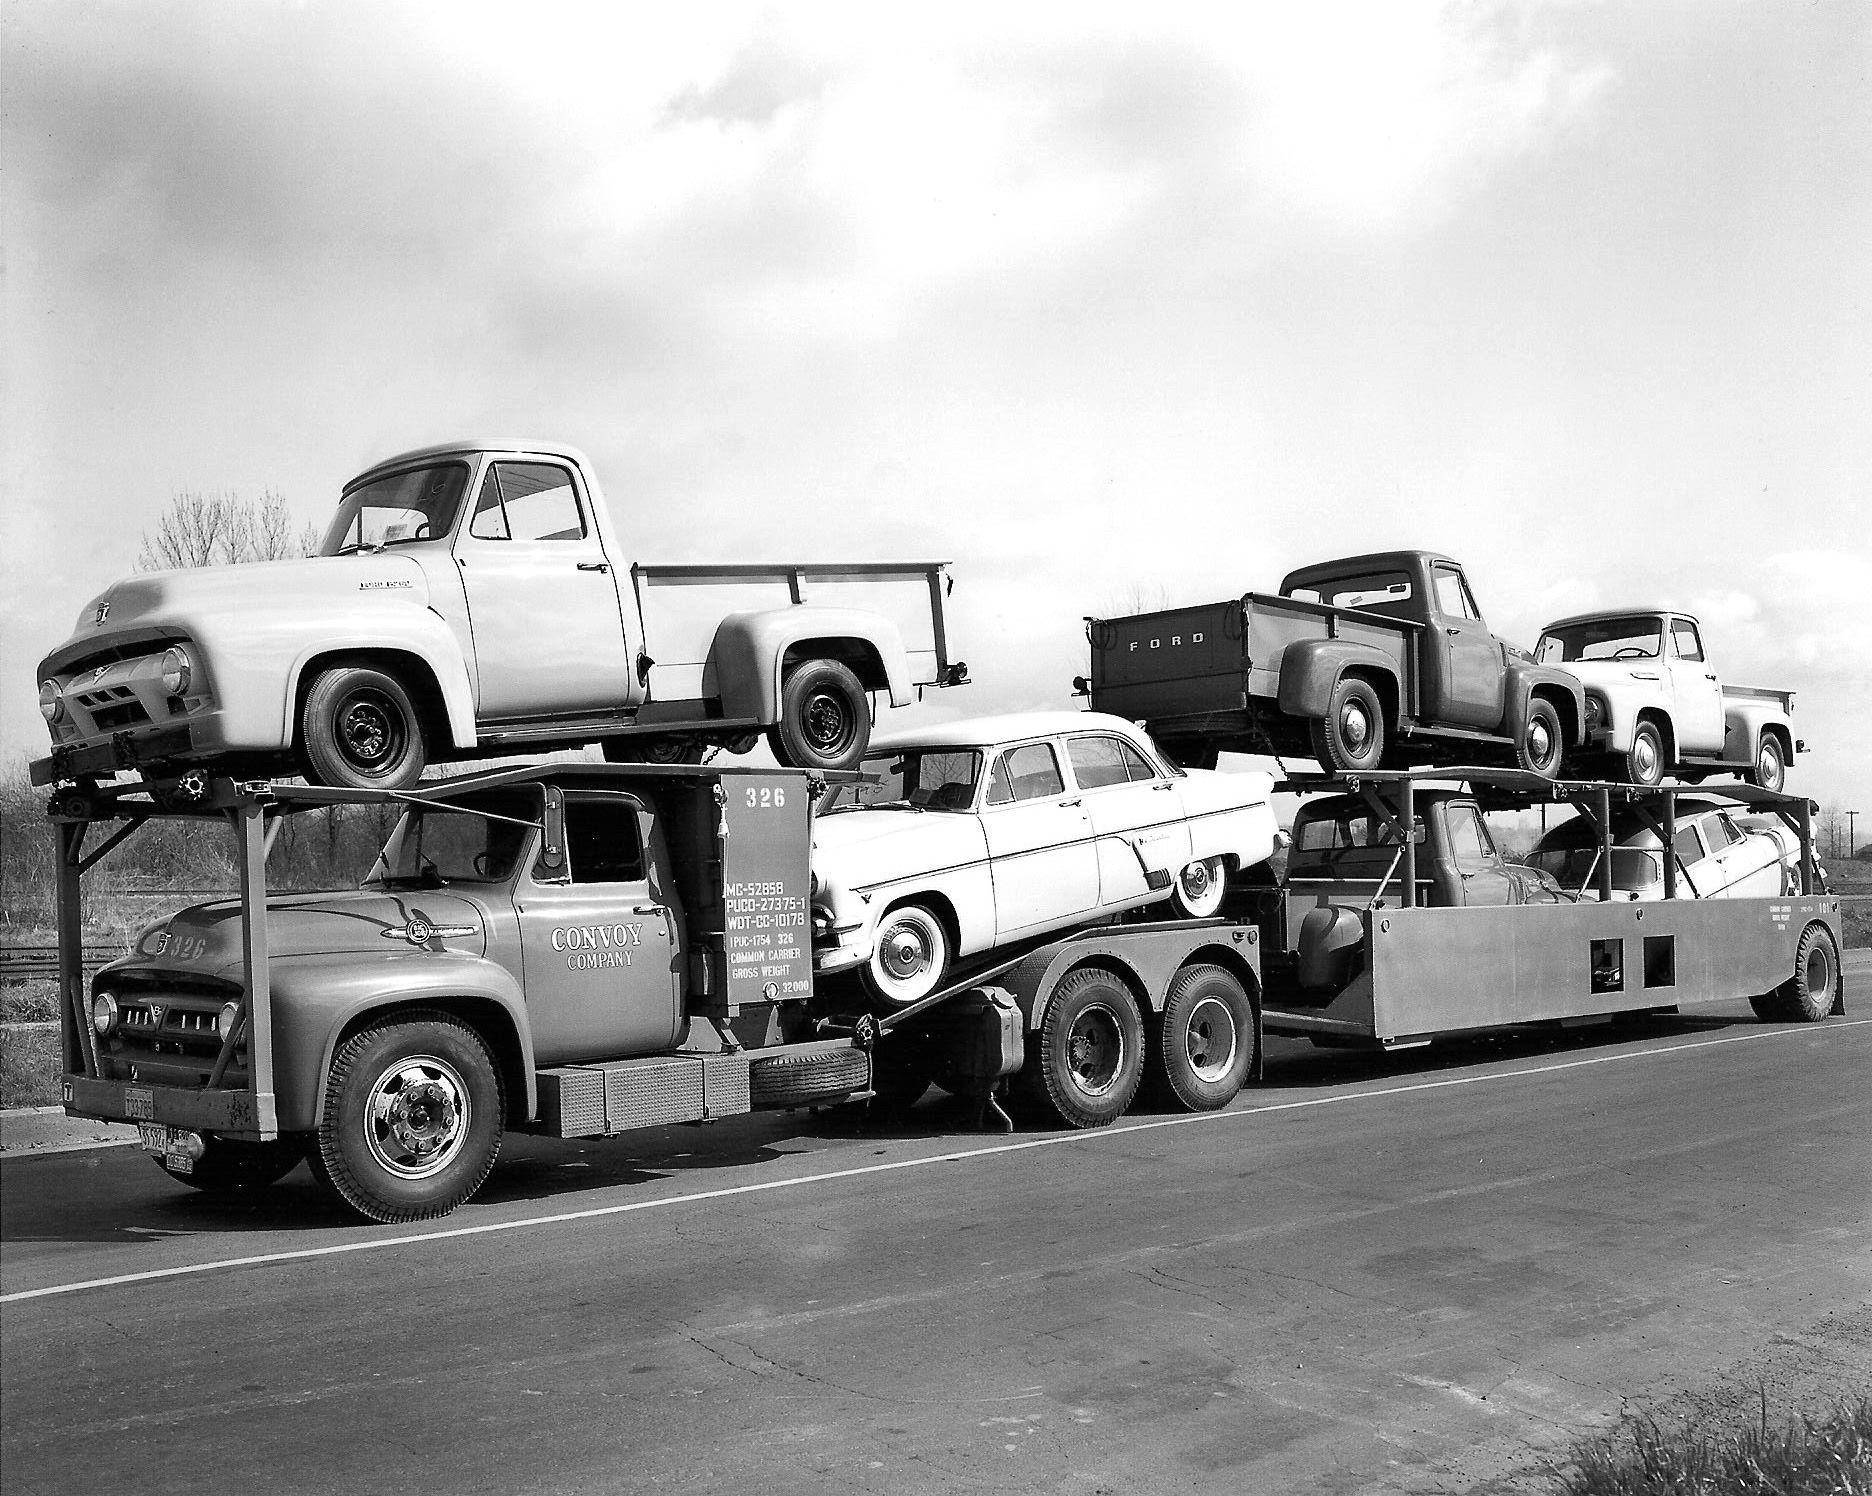 1954 Ford Semi Truck Dump Convoy Companys With A Load Of Fords Car 1872x1496